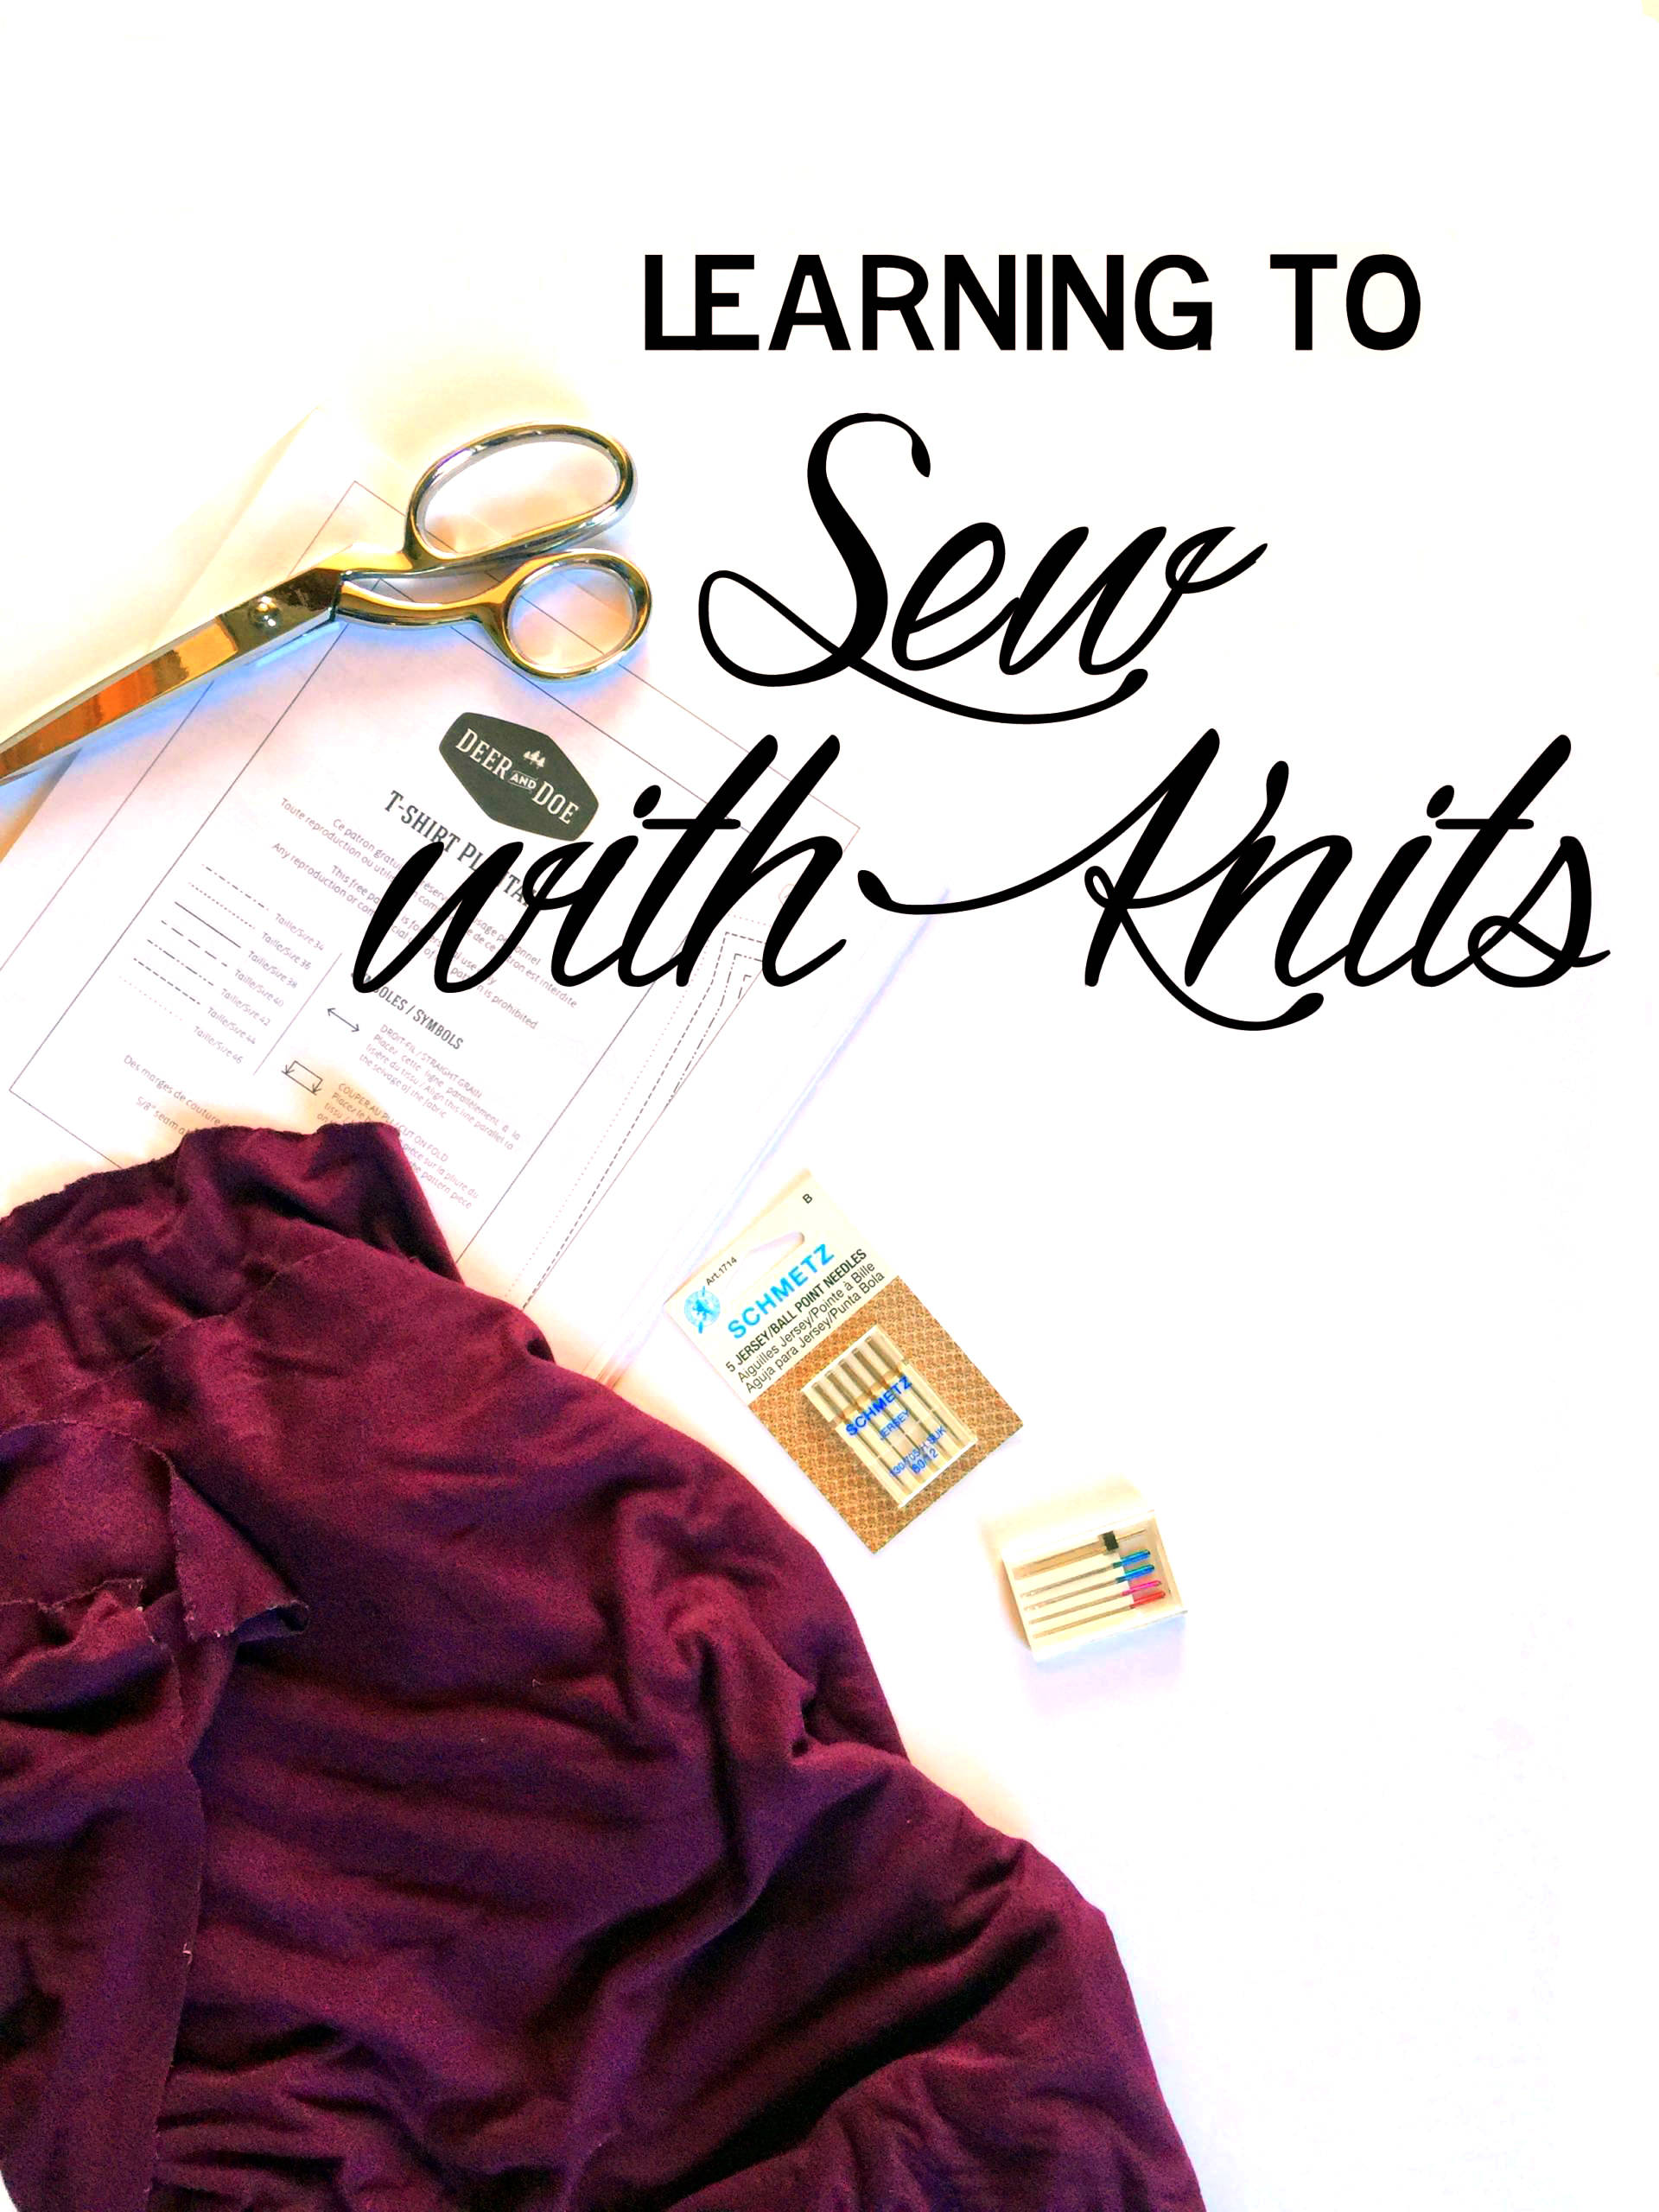 Learning to Sew with Knits: || Tips for Beginner Sewing